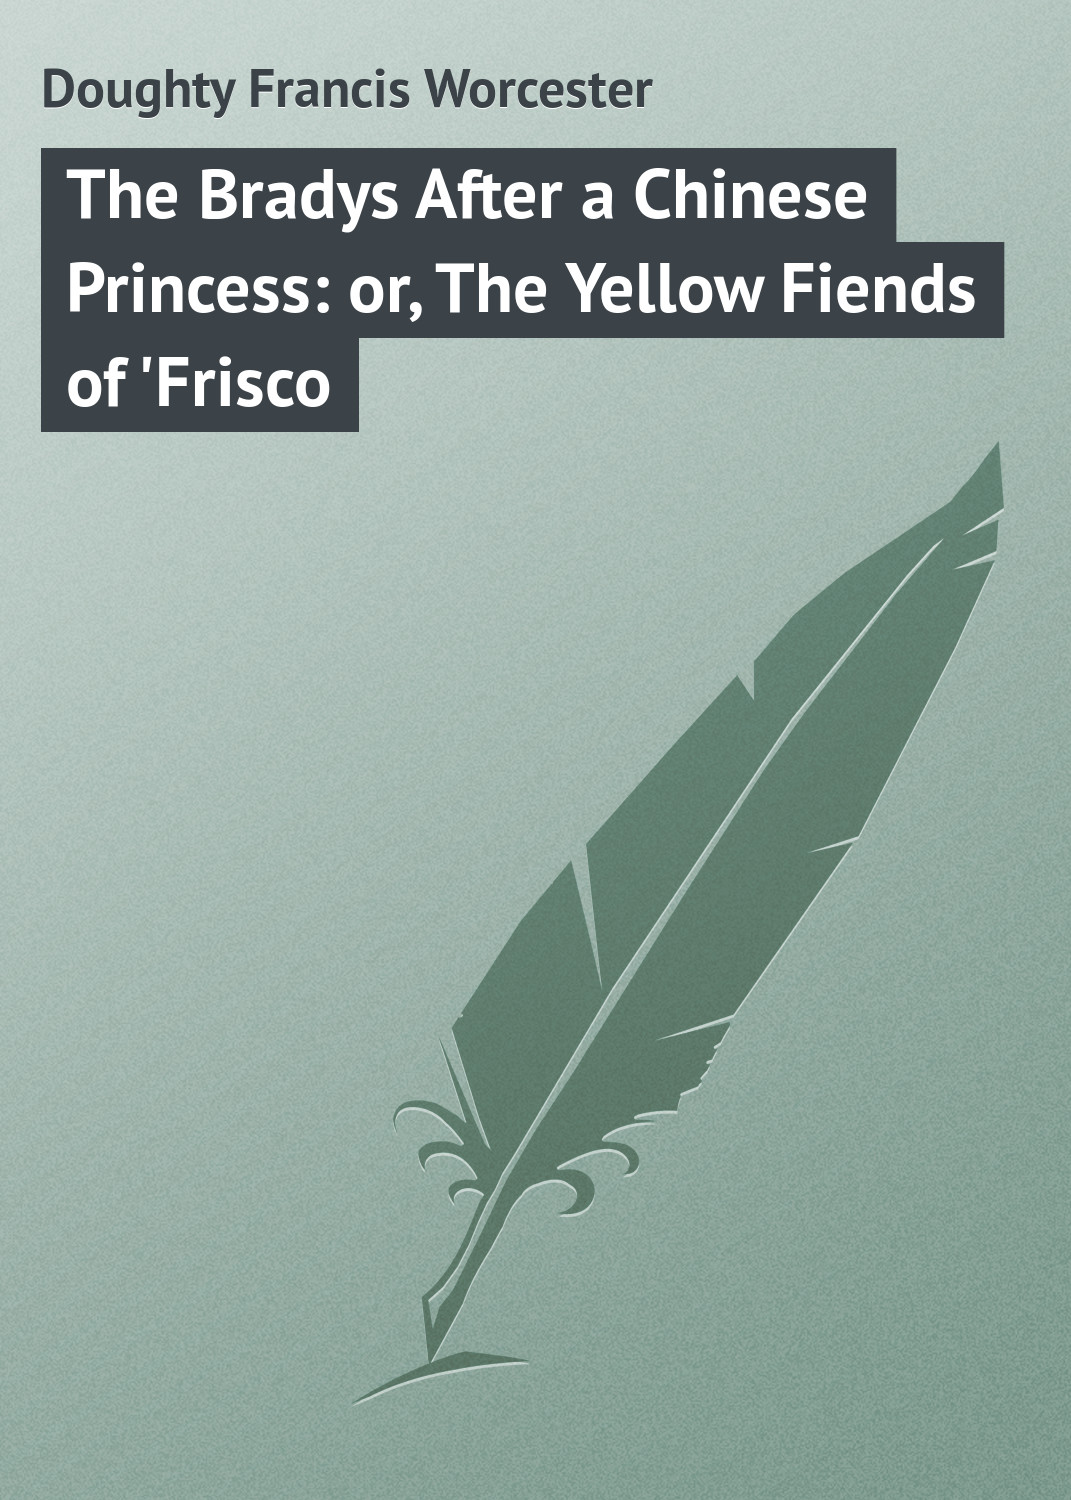 Doughty Francis Worcester The Bradys After a Chinese Princess: or, The Yellow Fiends of 'Frisco mhu 4 flying fiends and grues